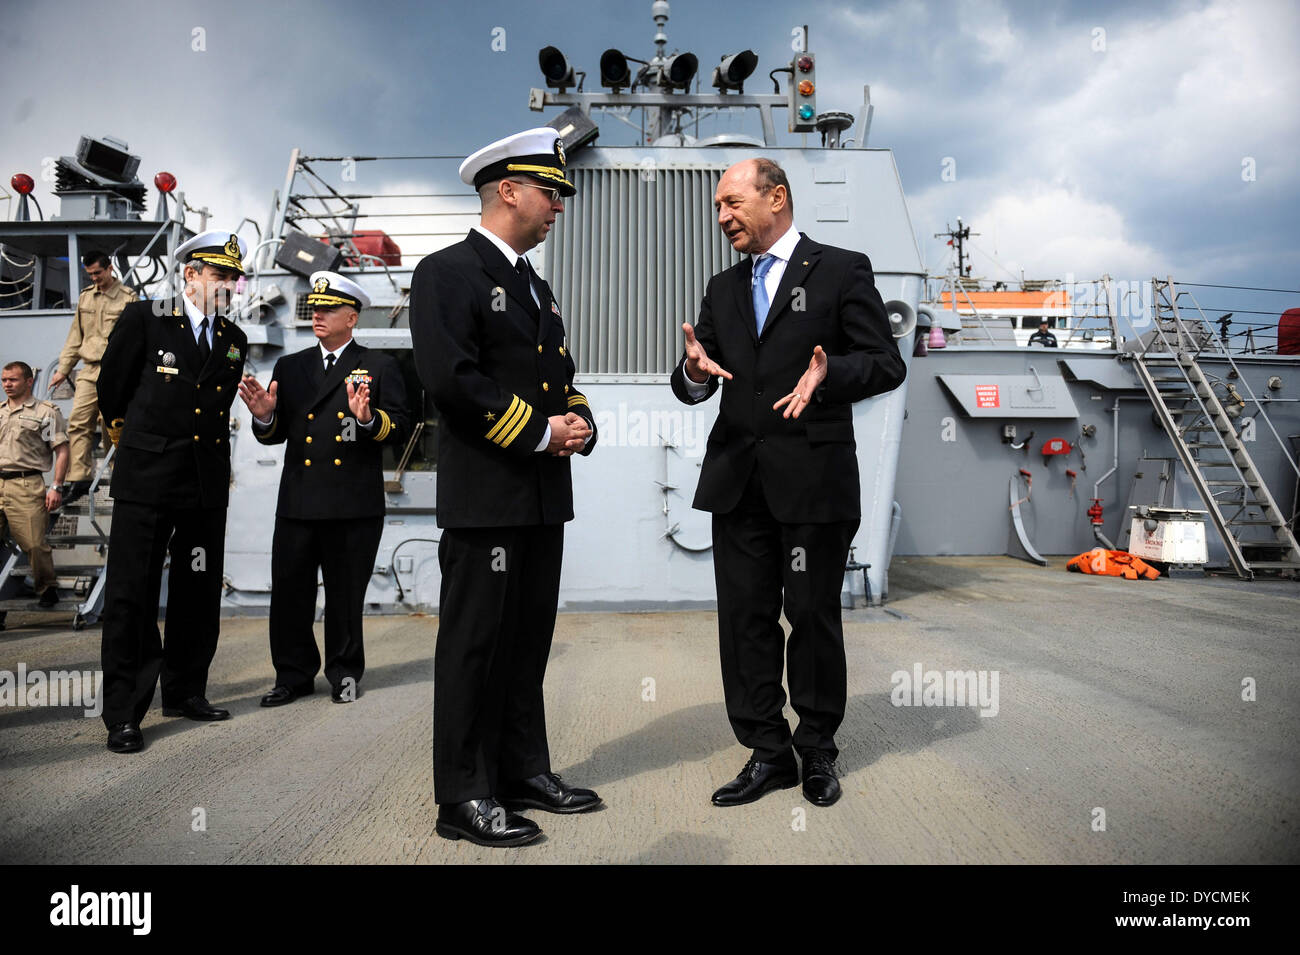 Constanta, Romania. 14th Apr, 2014. Romanian President Traian Basescu (1st R) visits the USS Destroyer Donald Cook in the Black Sea port of Constanta, Romania, on April 14, 2014. For four days, U.S. and Romanian navy troops will attend training activities in the Romanian territorial waters as well as in the international Black Sea waters. Credit:  Agerpres/Xinhua/Alamy Live News - Stock Image